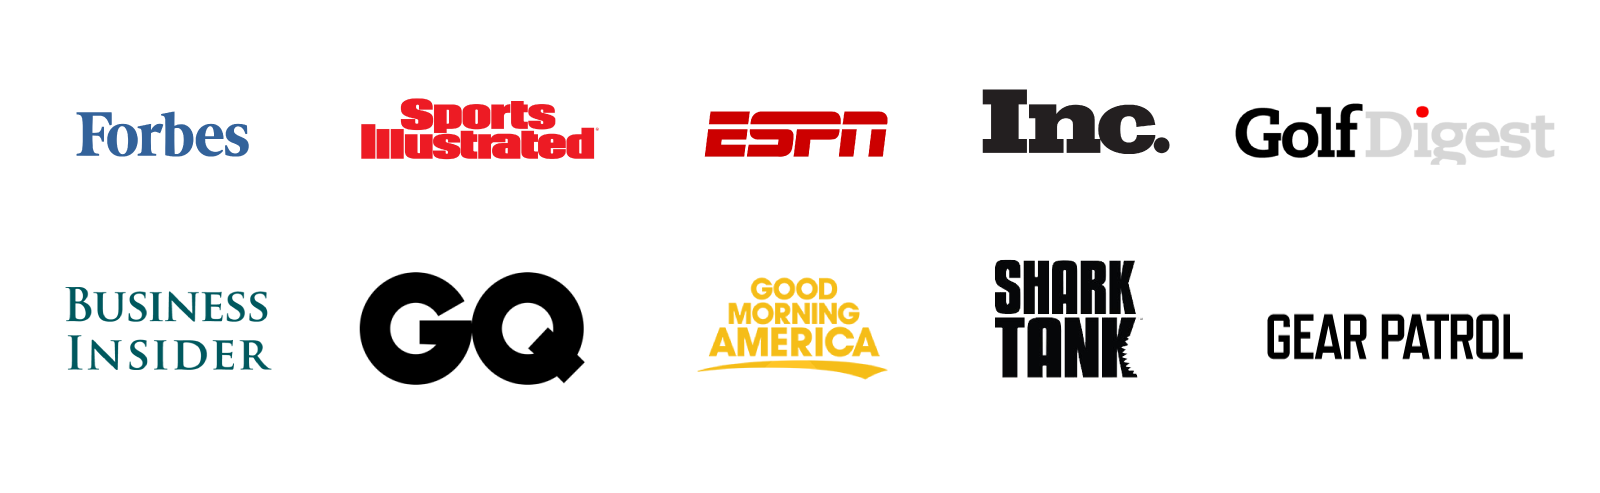 List of media and publication companies Mission Belt has been featured in - Forbes, Sports Illustrated, ESPN, Inc., Golf Digest, Business Insider, GQ, Good Morning America, Shark Tank, Gear Patrol